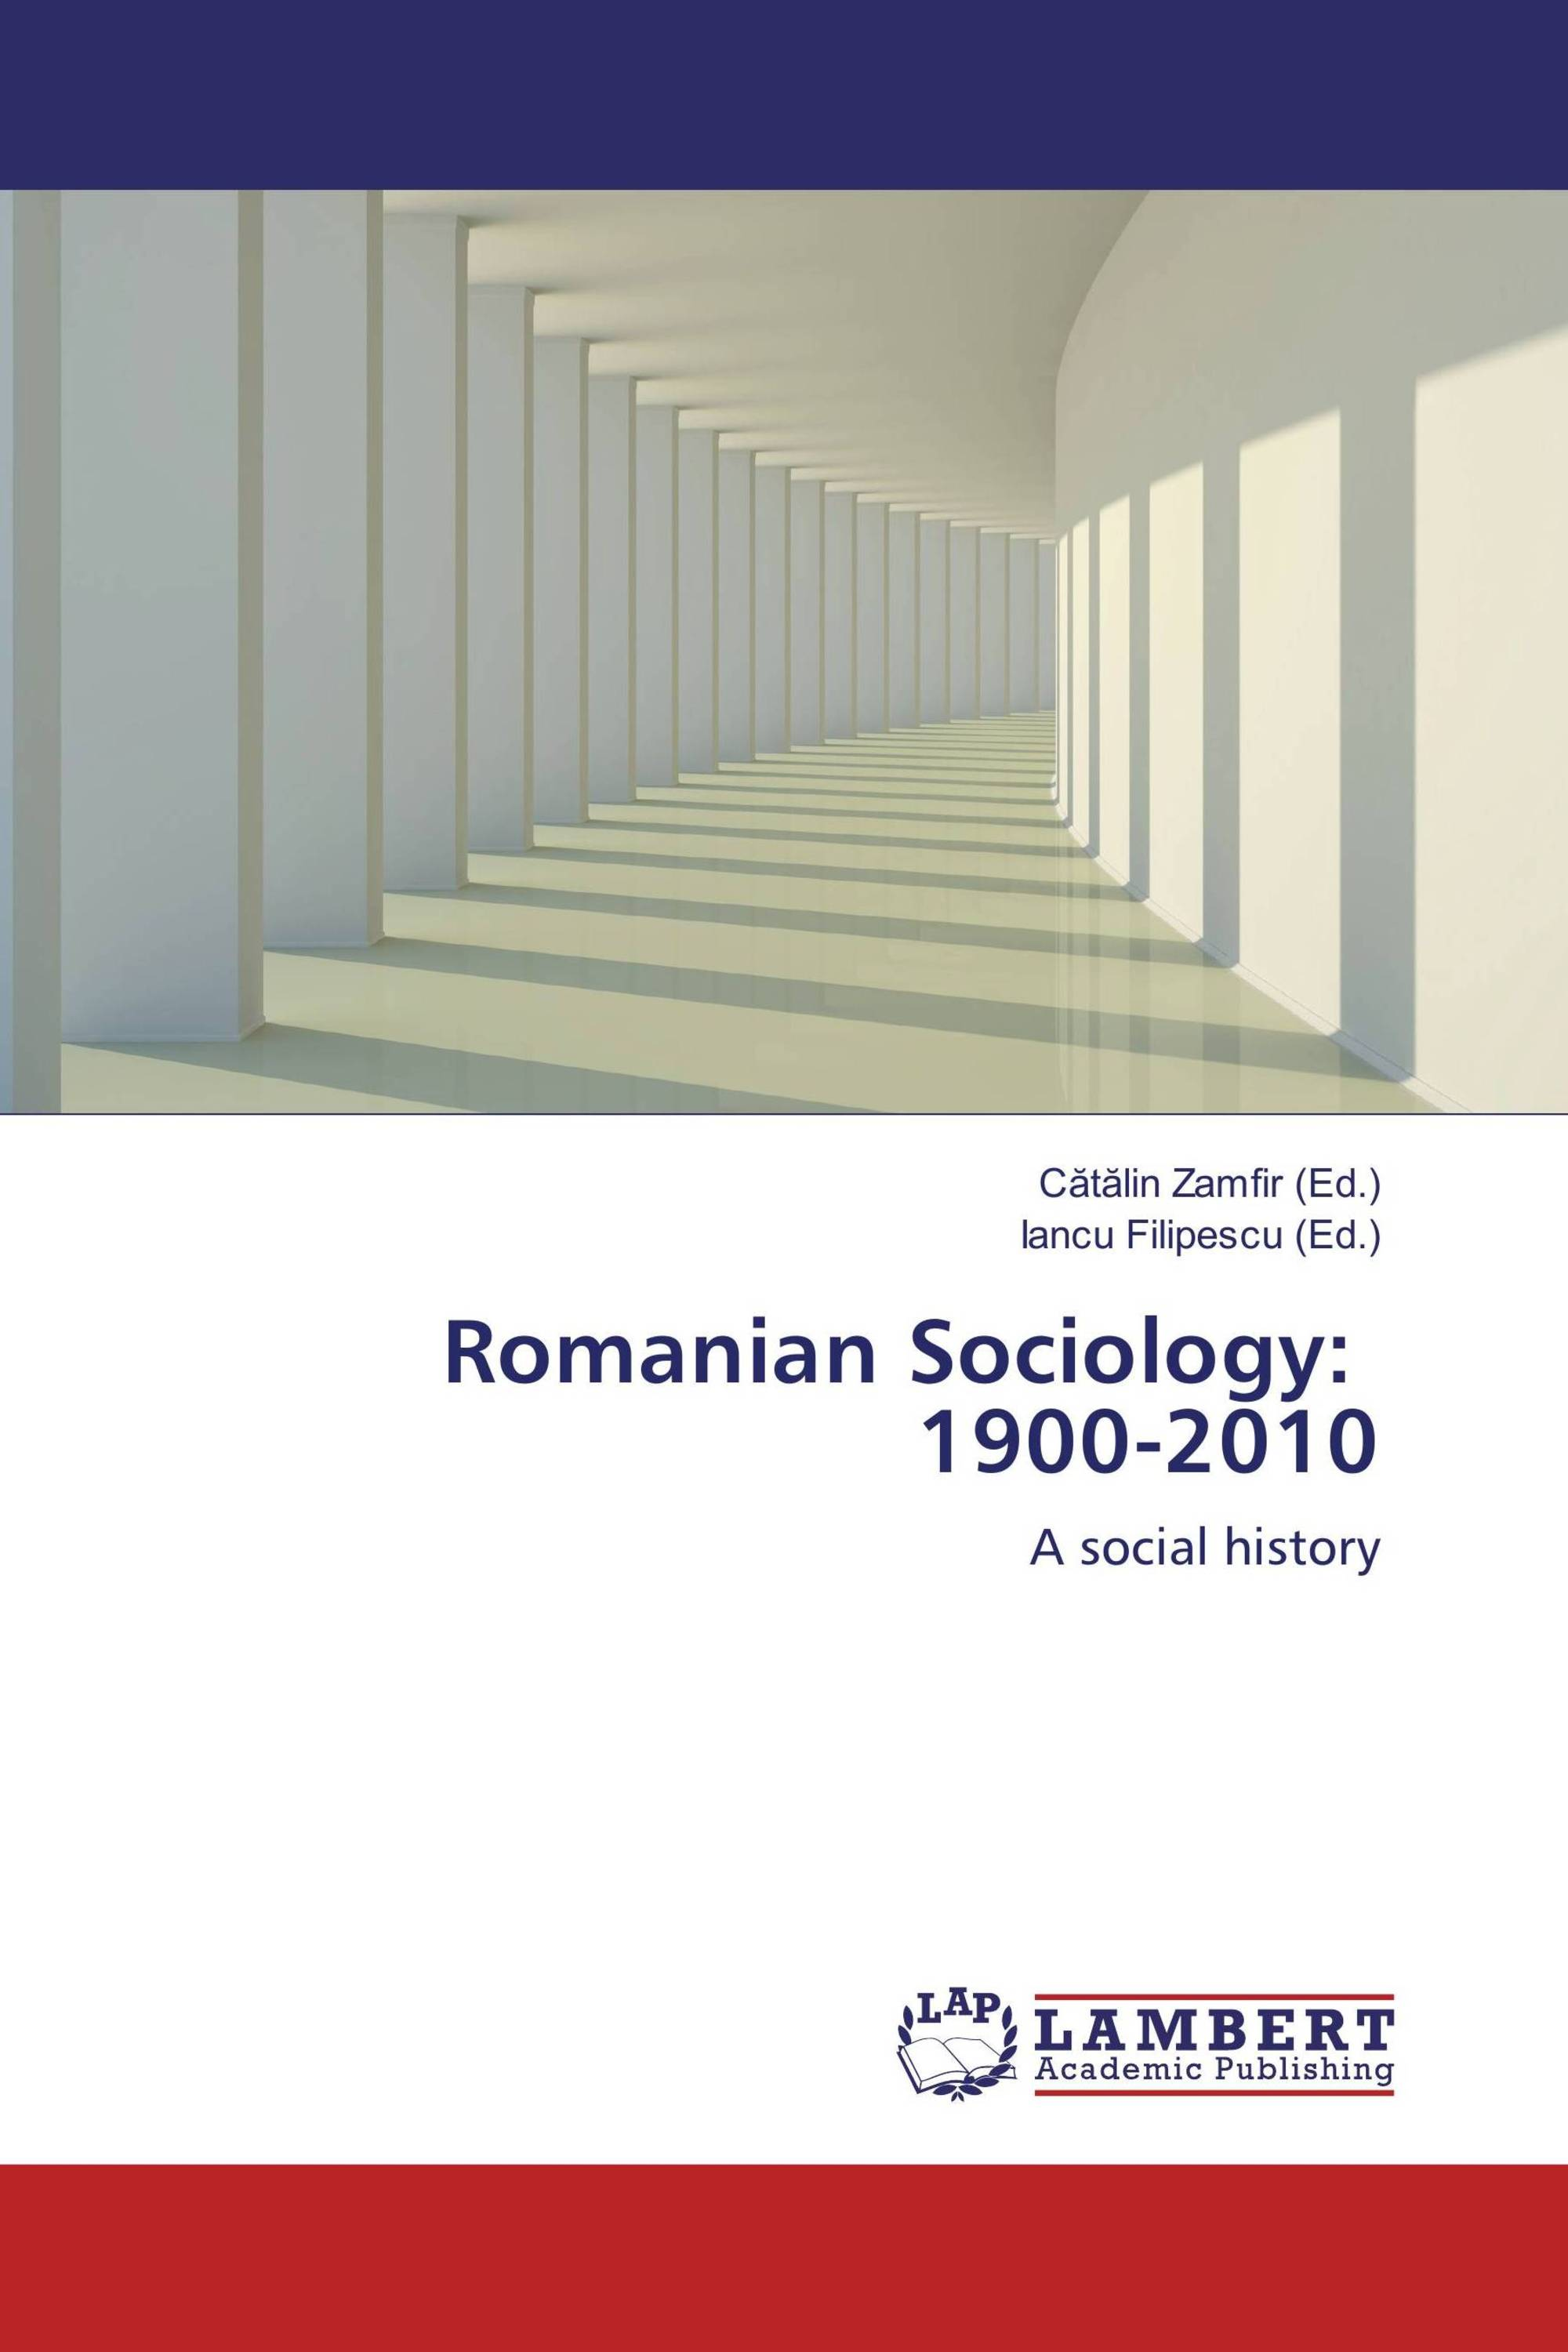 Romanian Sociology: 1900-2010